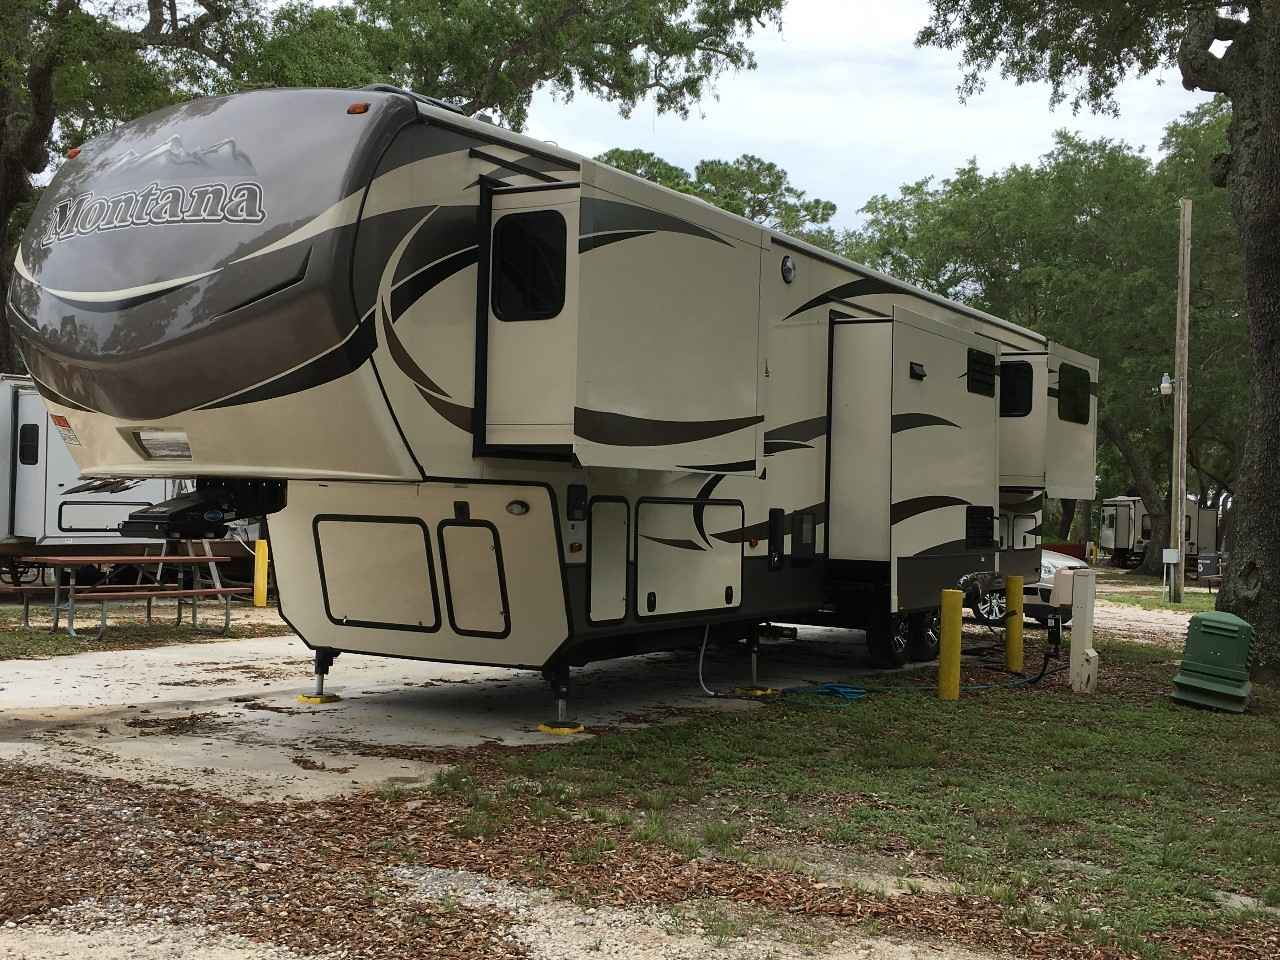 2016 Used Keystone Montana 3790rd Fifth Wheel In Florida Fl. Tv Stand Showcase Designs Living Room. Design Room 3d Online Free. Room Divider Brisbane. Small Dining Rooms. St Vincent De Paul Dining Room. Boeing Media Room. Ikea Laundry Room Wall Cabinets. Studio Flat Room Dividers